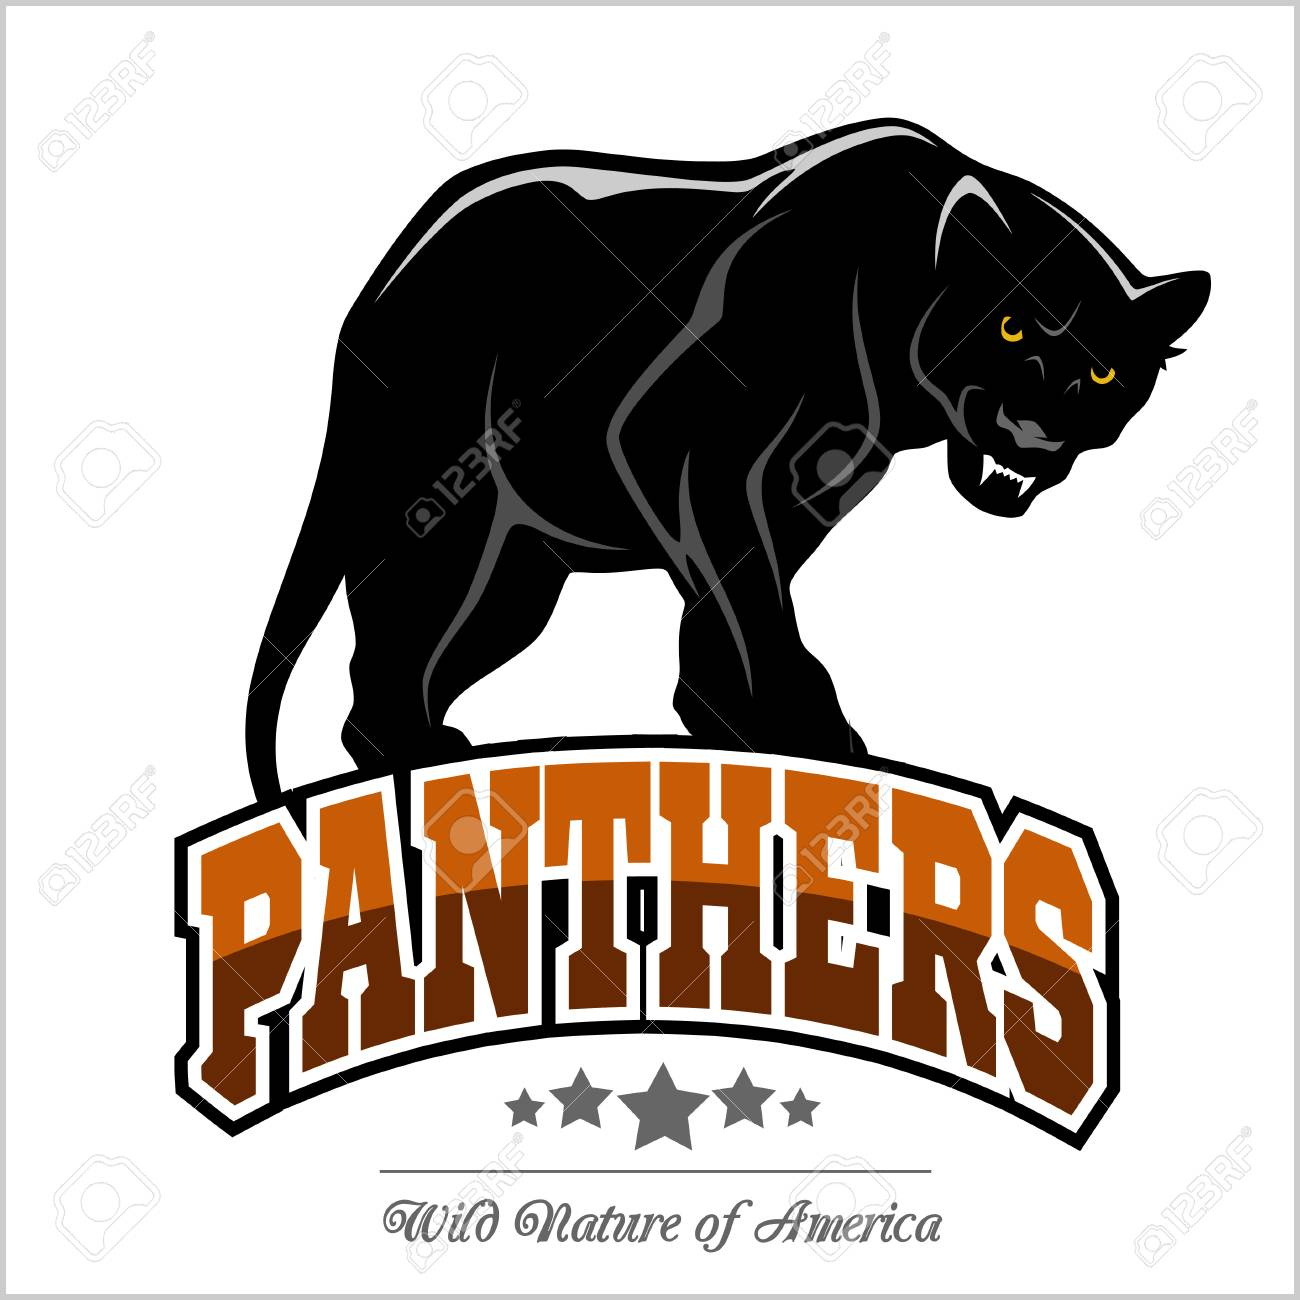 Panthers mascot - vector illustration - 93694294